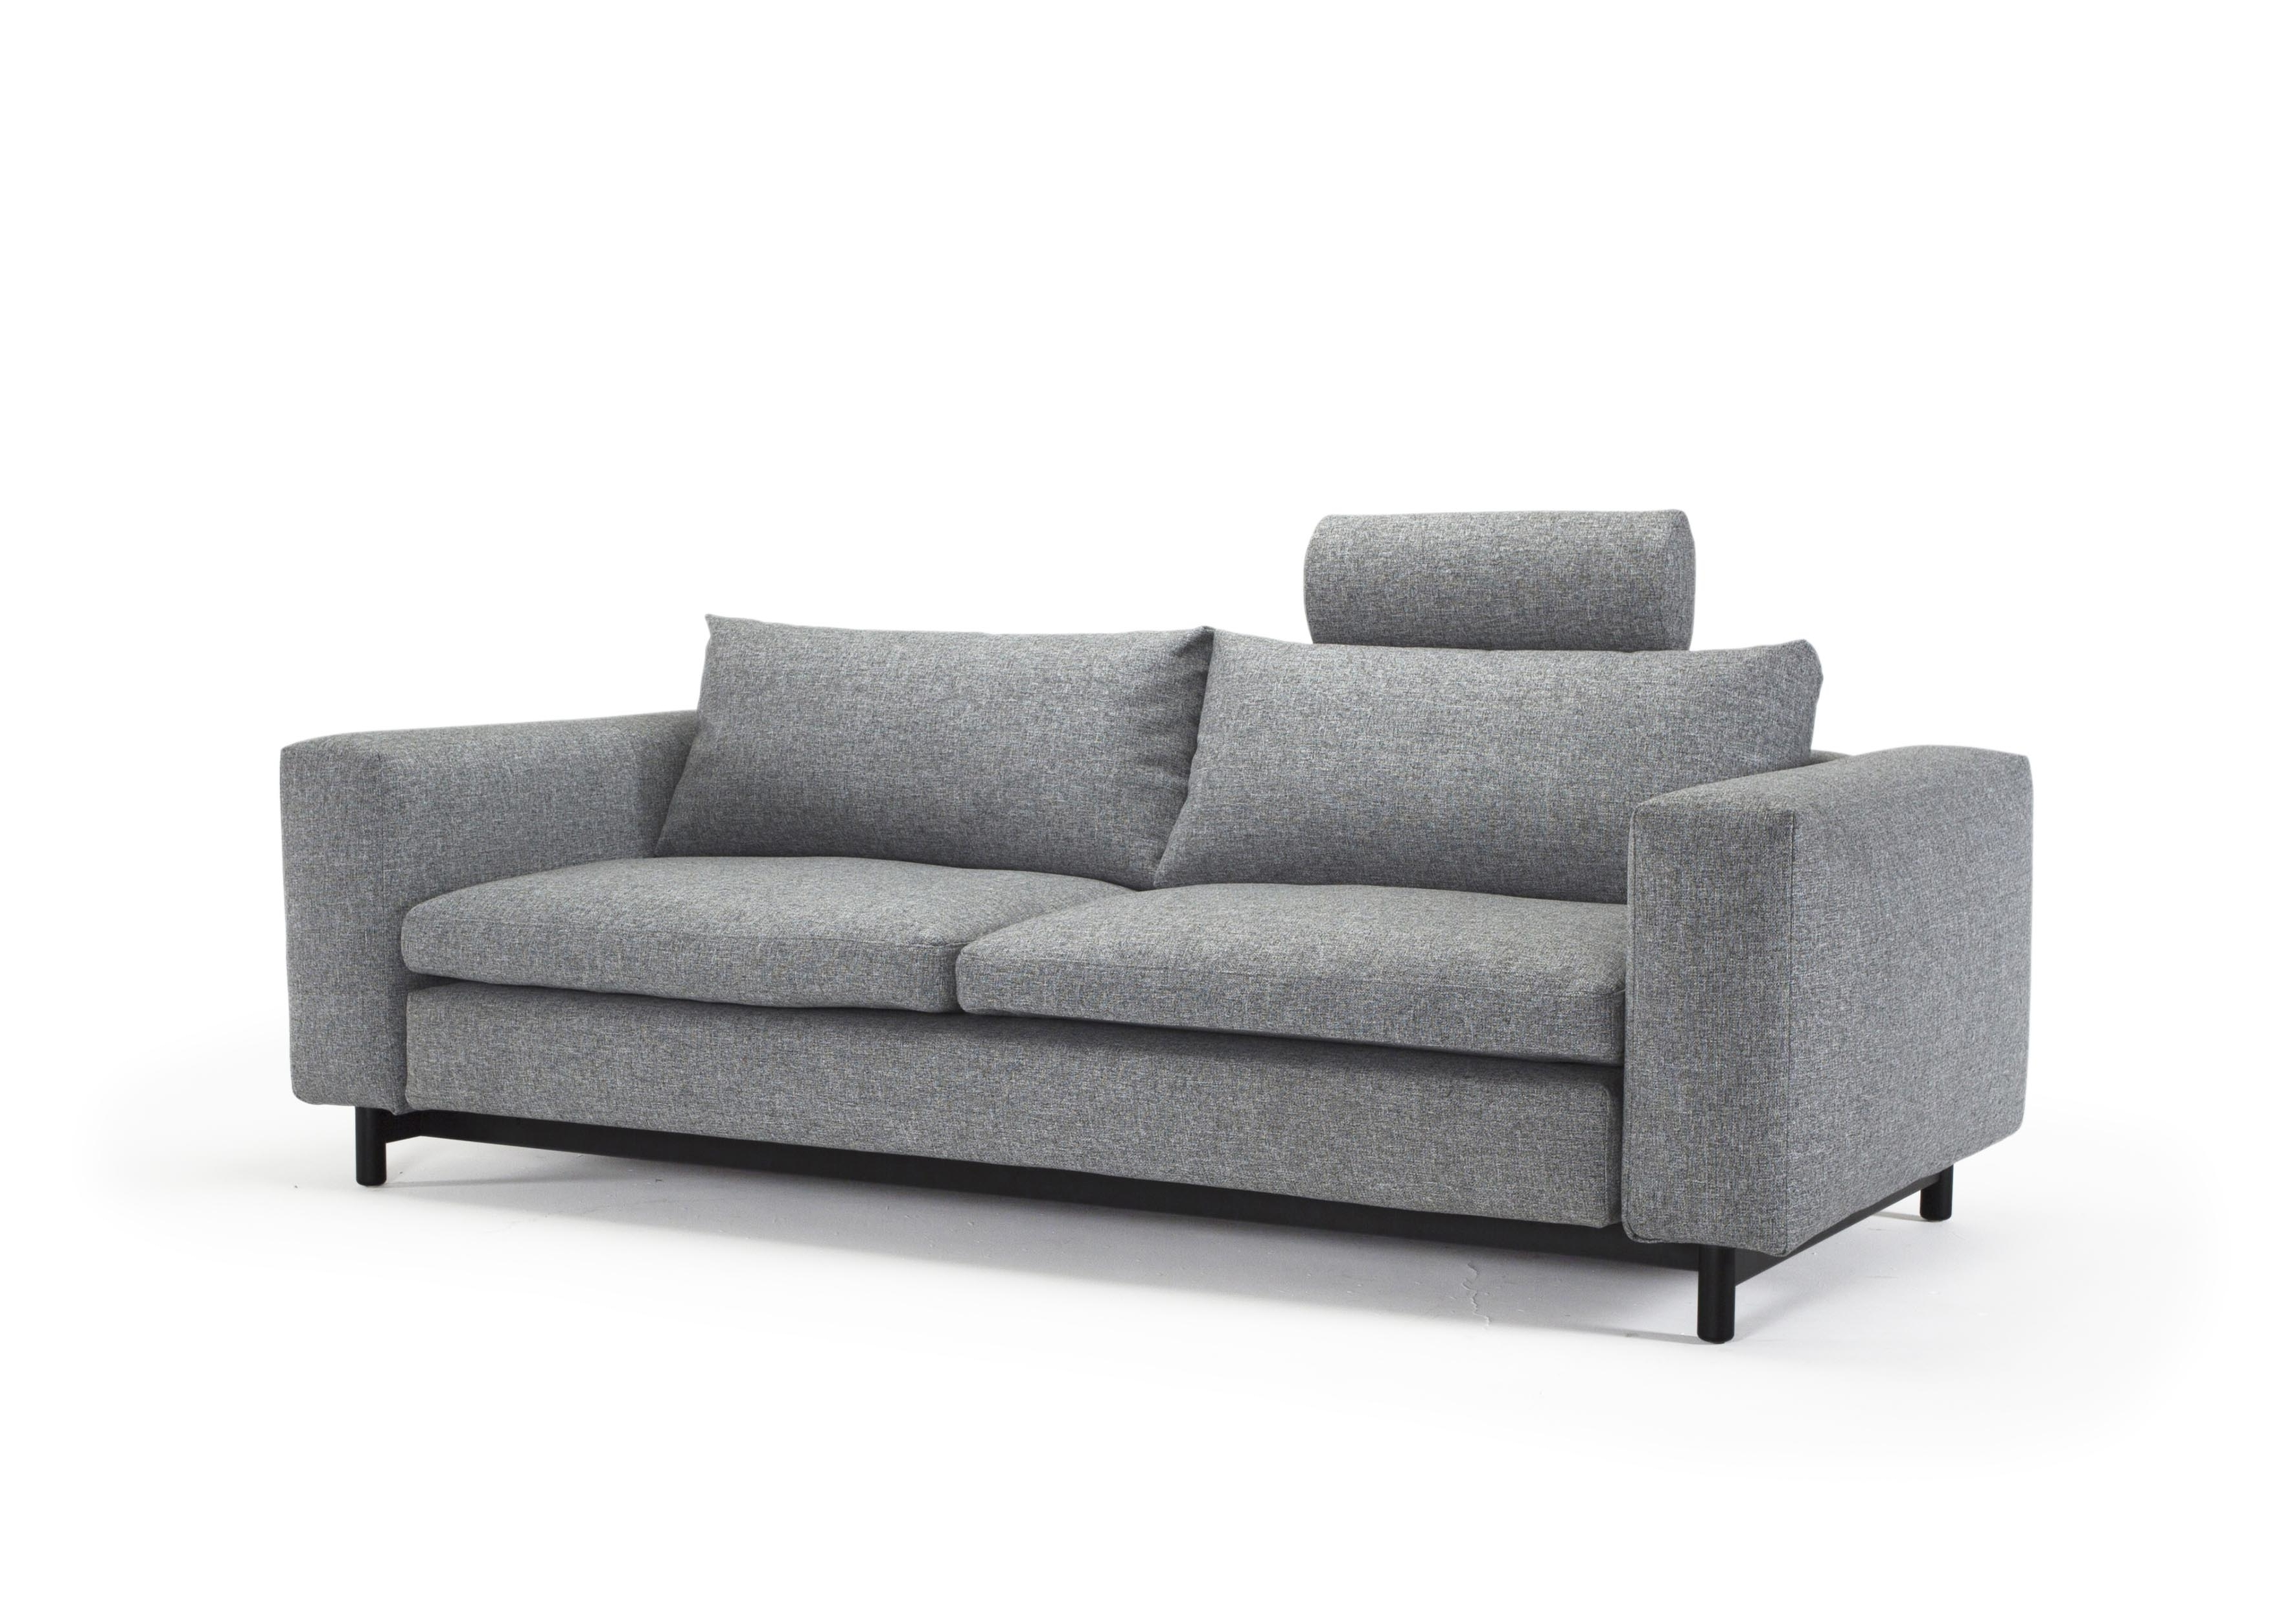 Queen Size Sofas In Famous Magni Sofa Bed (Queen Size) Twist Graniteinnovation (View 12 of 20)